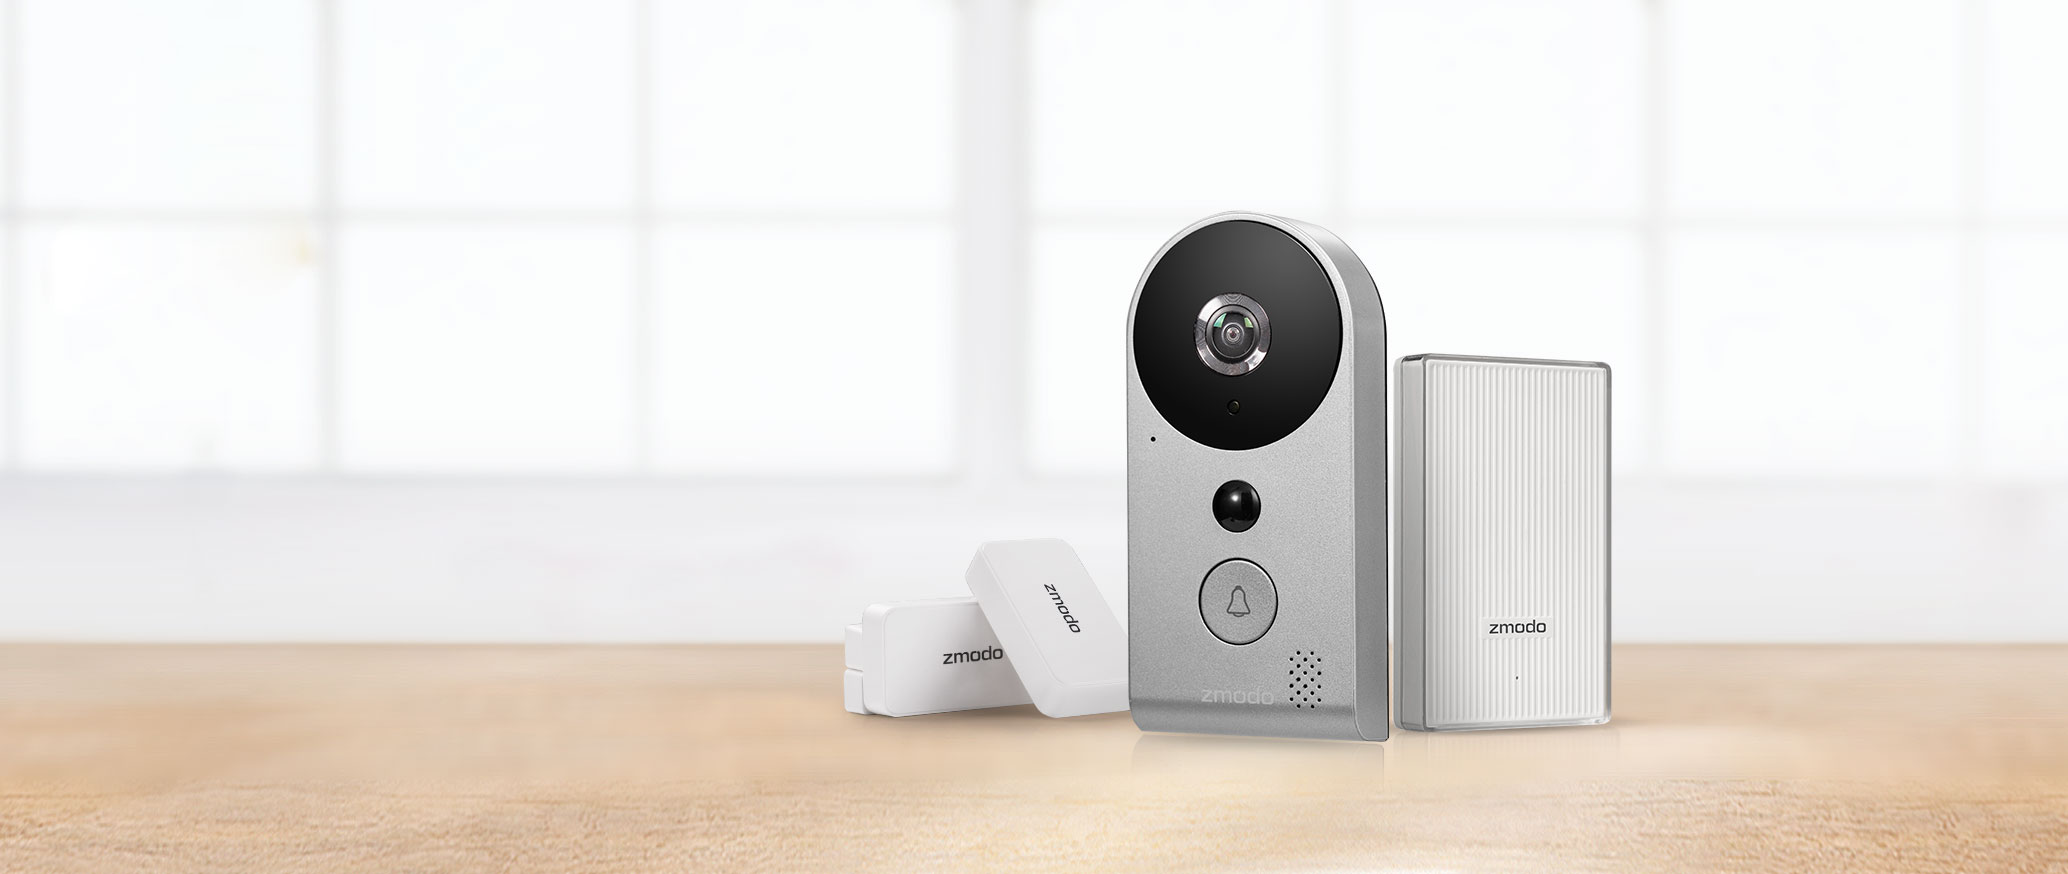 zmodo greet wi fi video doorbell home package. Black Bedroom Furniture Sets. Home Design Ideas